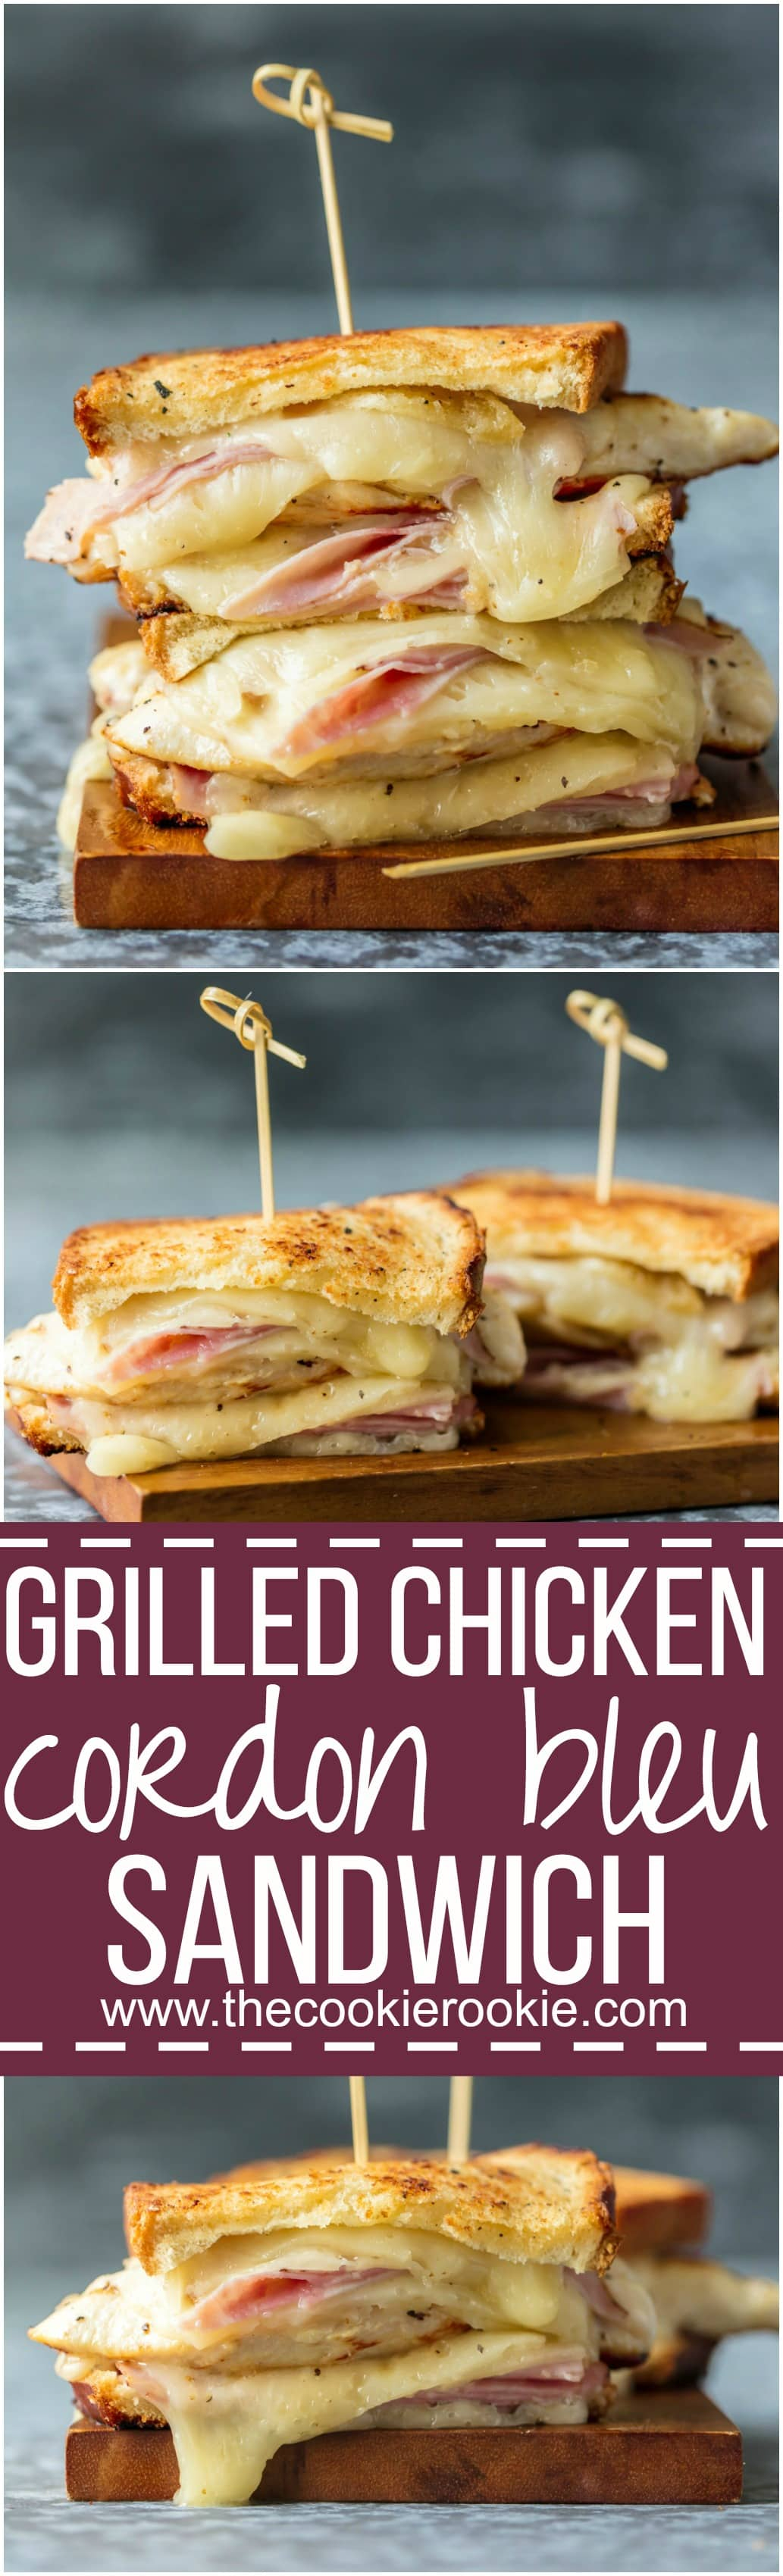 This GRILLED CHICKEN CORDON BLEU SANDWICH is so easy and so full of flavor! Kick your sandwich game up a notch with layers of grilled chicken, creamy swiss, honey ham, and buttered bread.